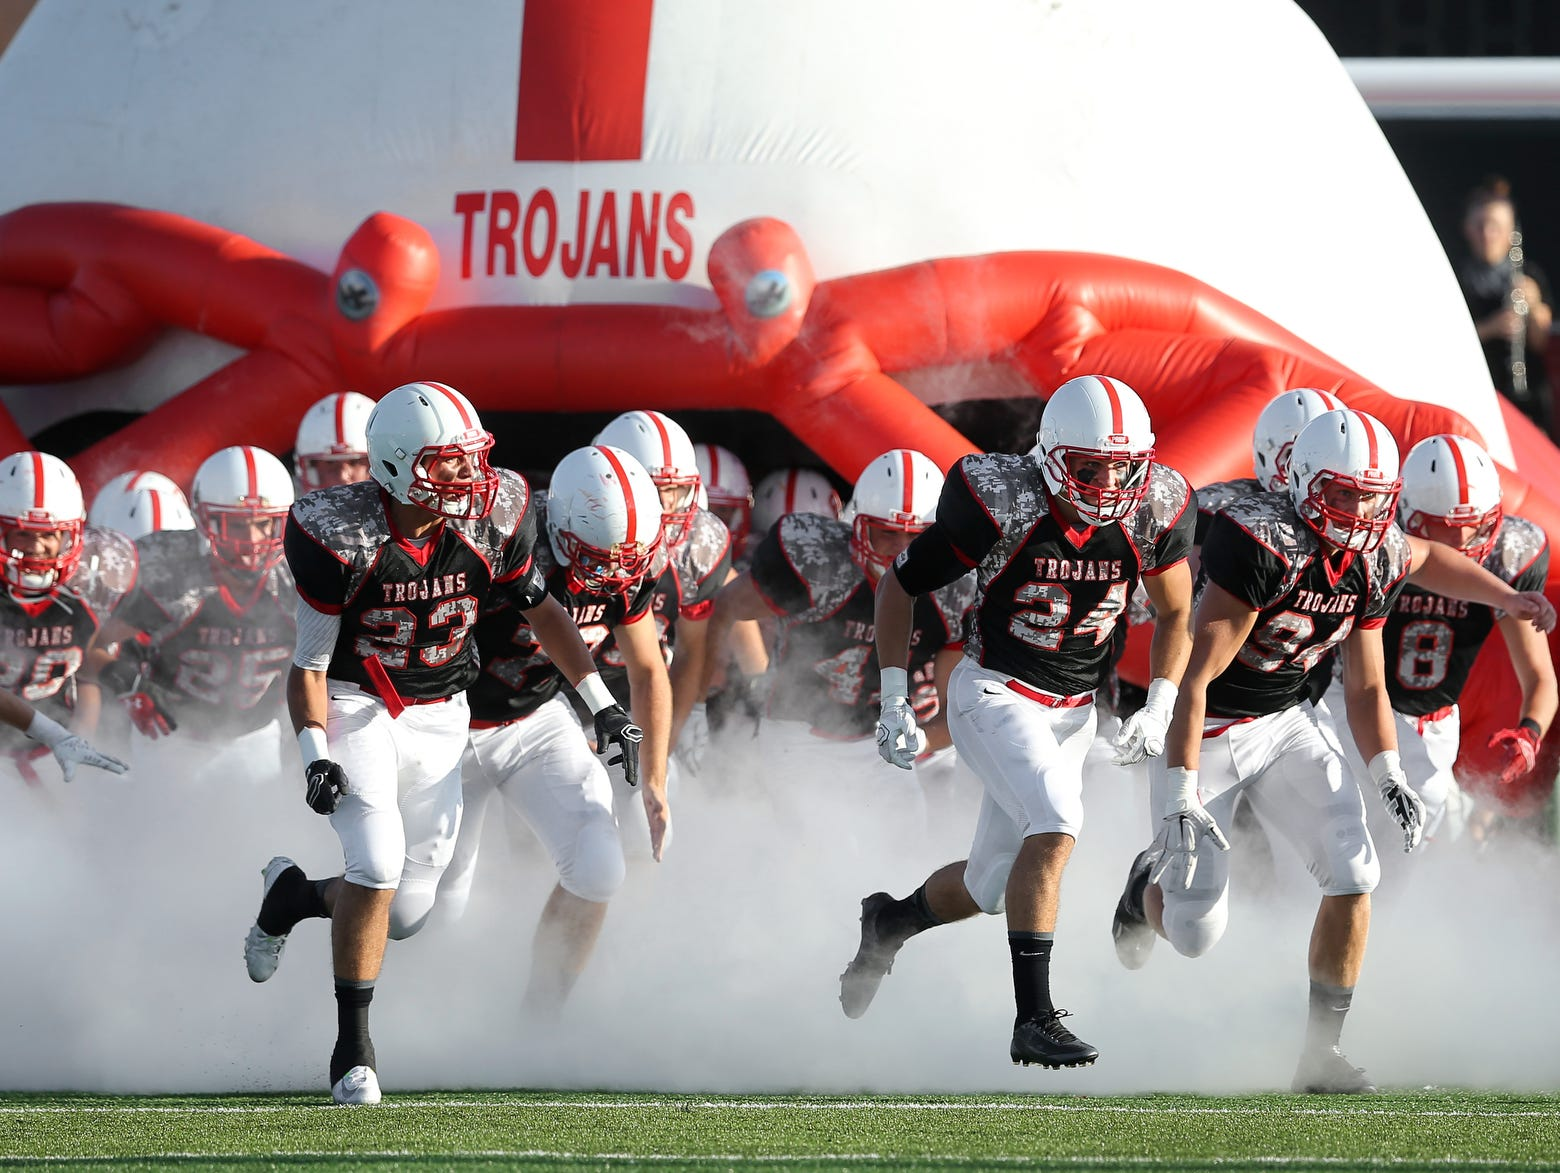 Center Grove, the defending state champion, won four games last season by 30 points or more.